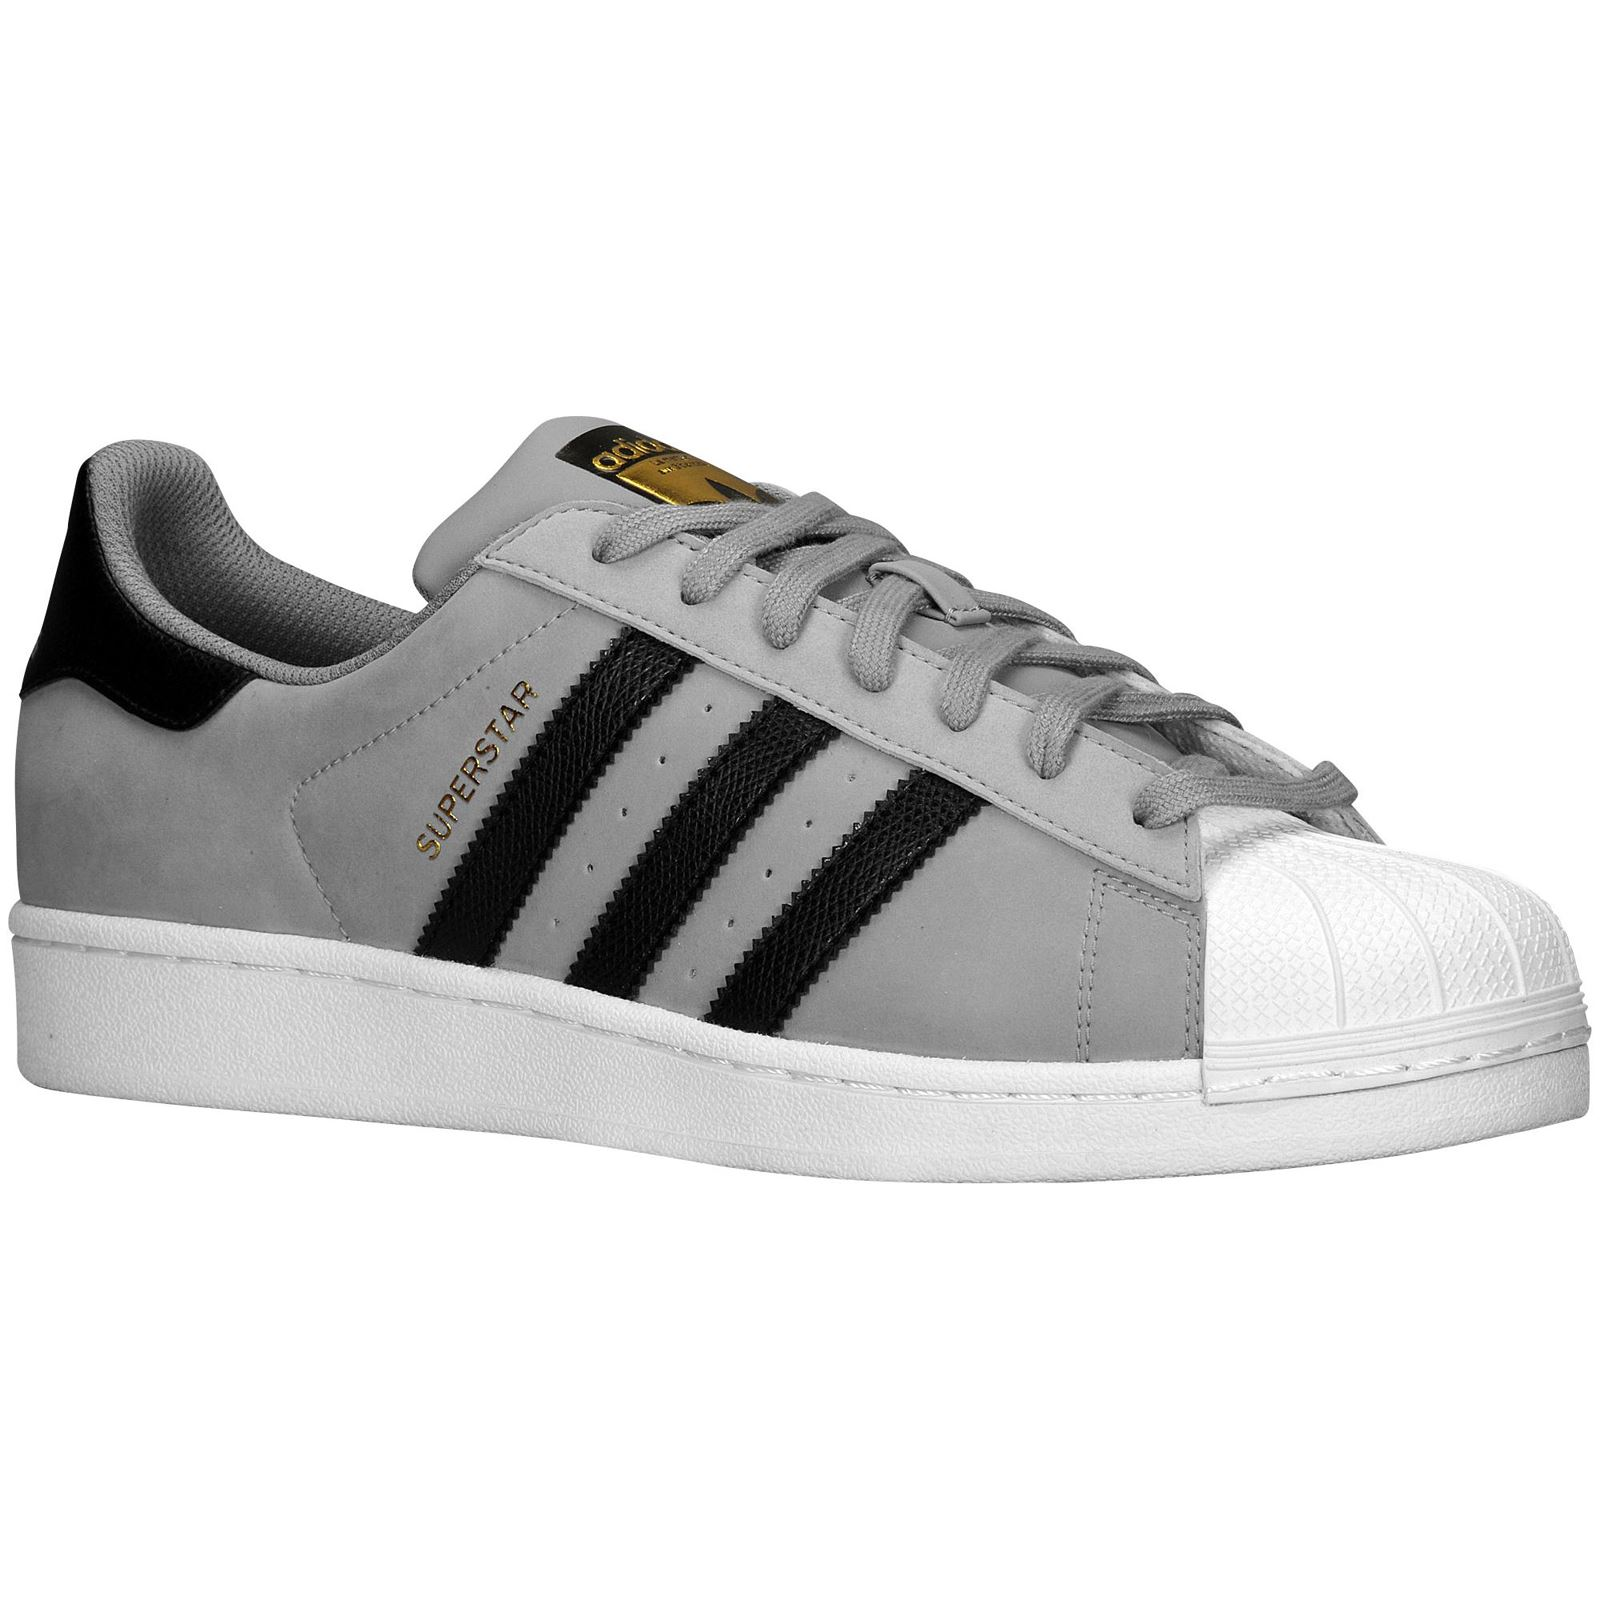 Adidas Superstar White And Black Mens